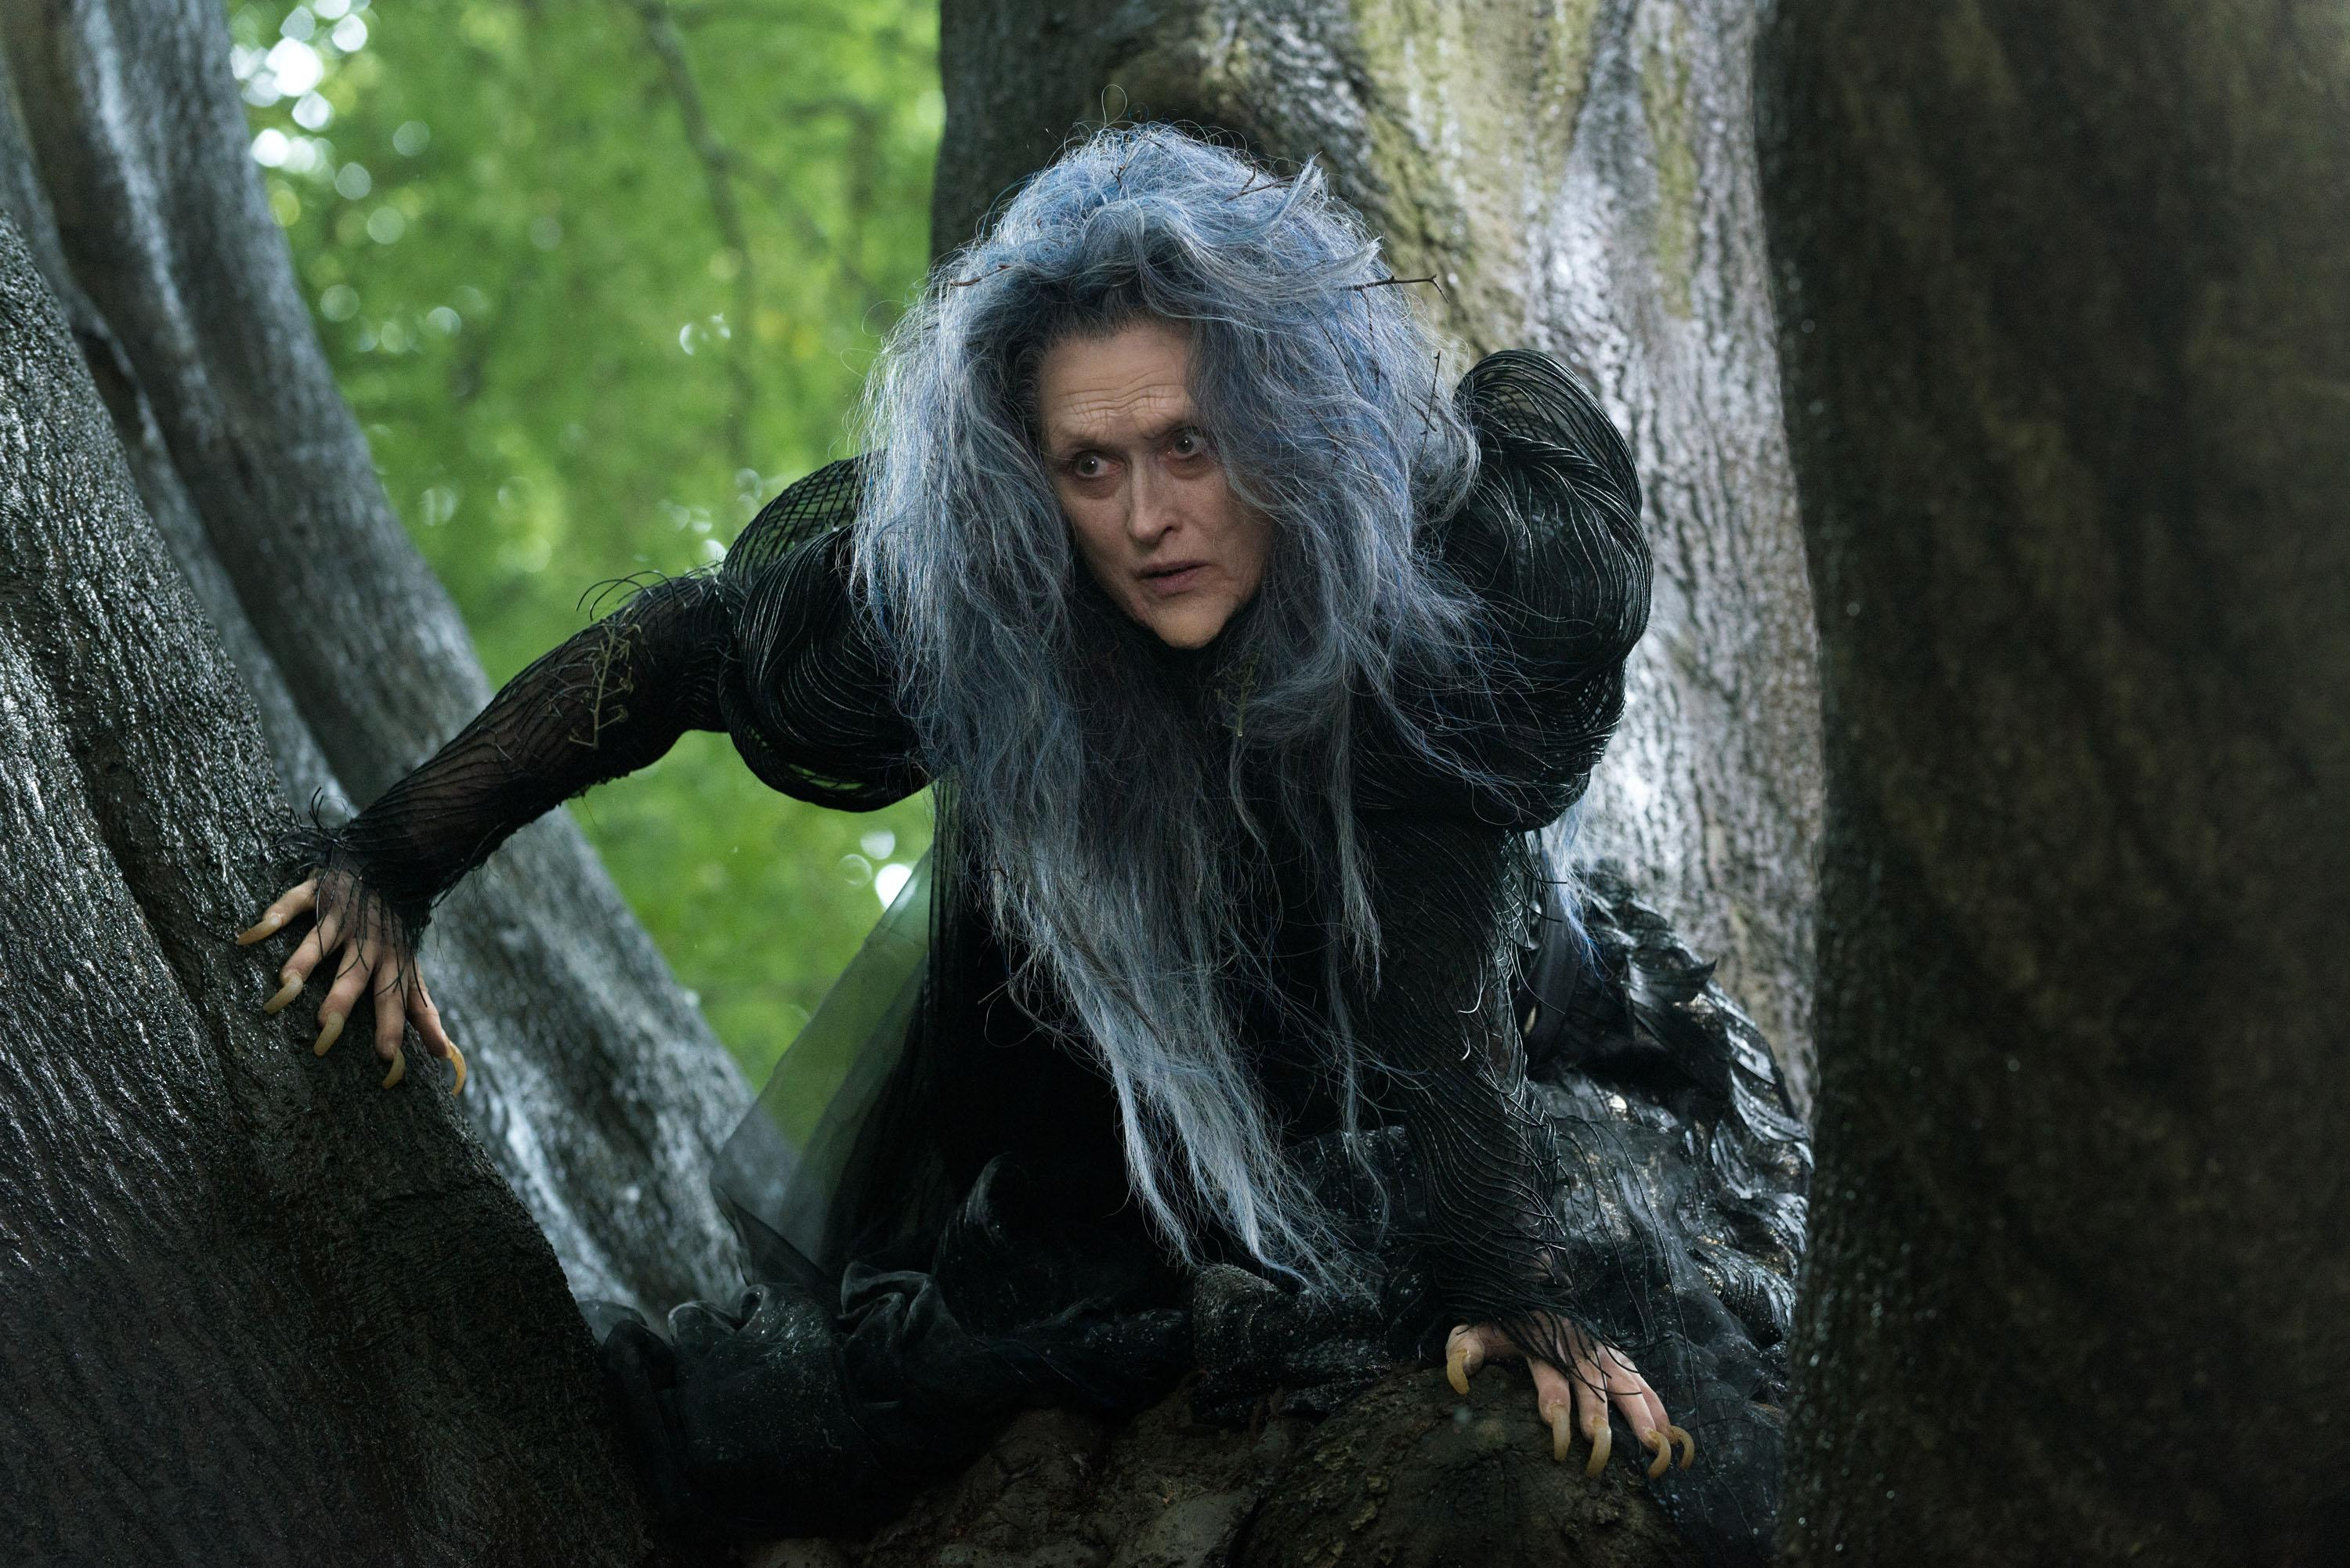 Box Office: 'Hobbit' wins, 'Interview' has strong VOD sales